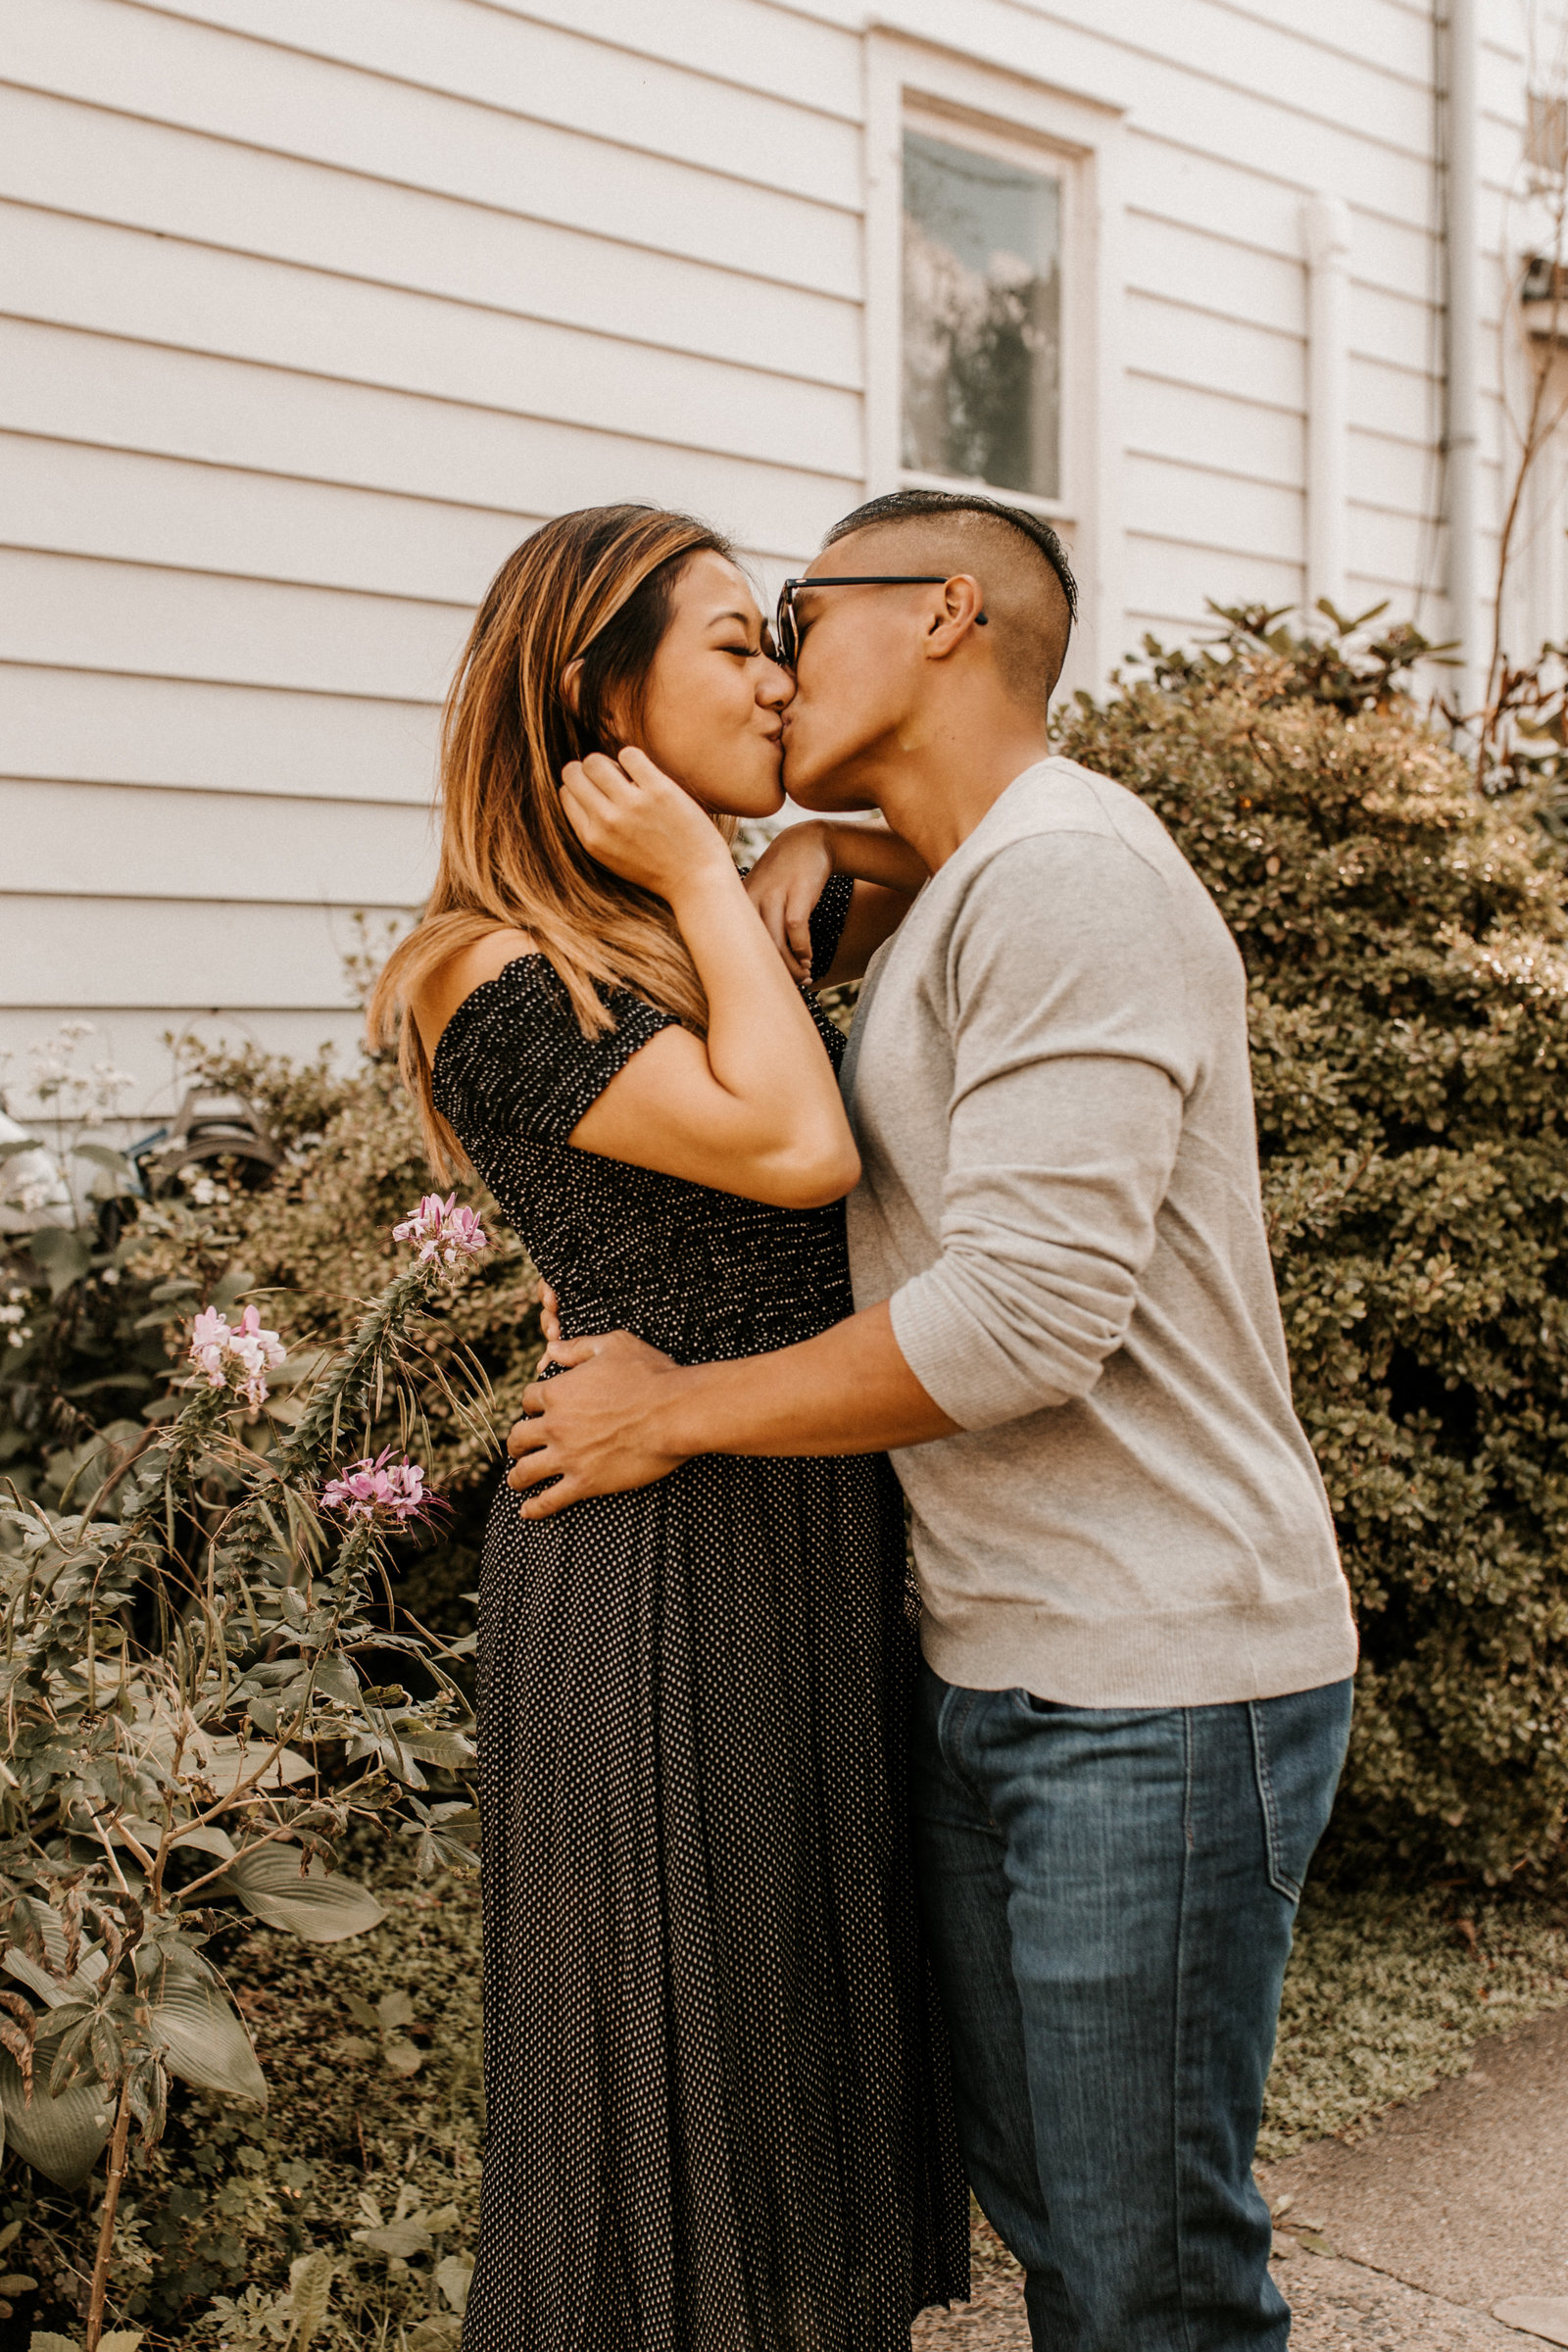 Tammy_Noel_Couples_Session_Sneak_Peeks_9.29.18-46